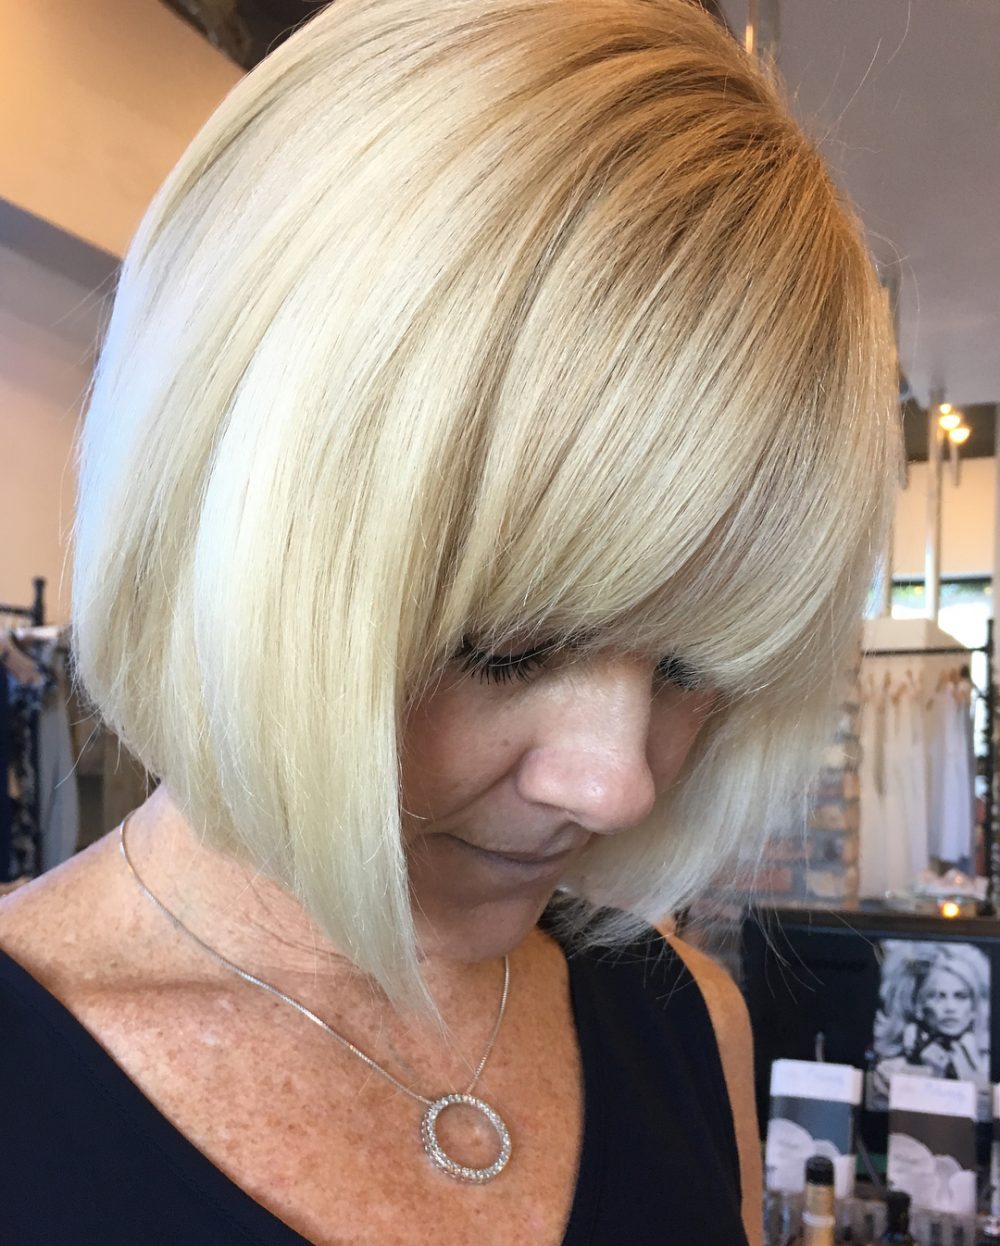 Fashion-Forward Chin Length Bob for Older Women